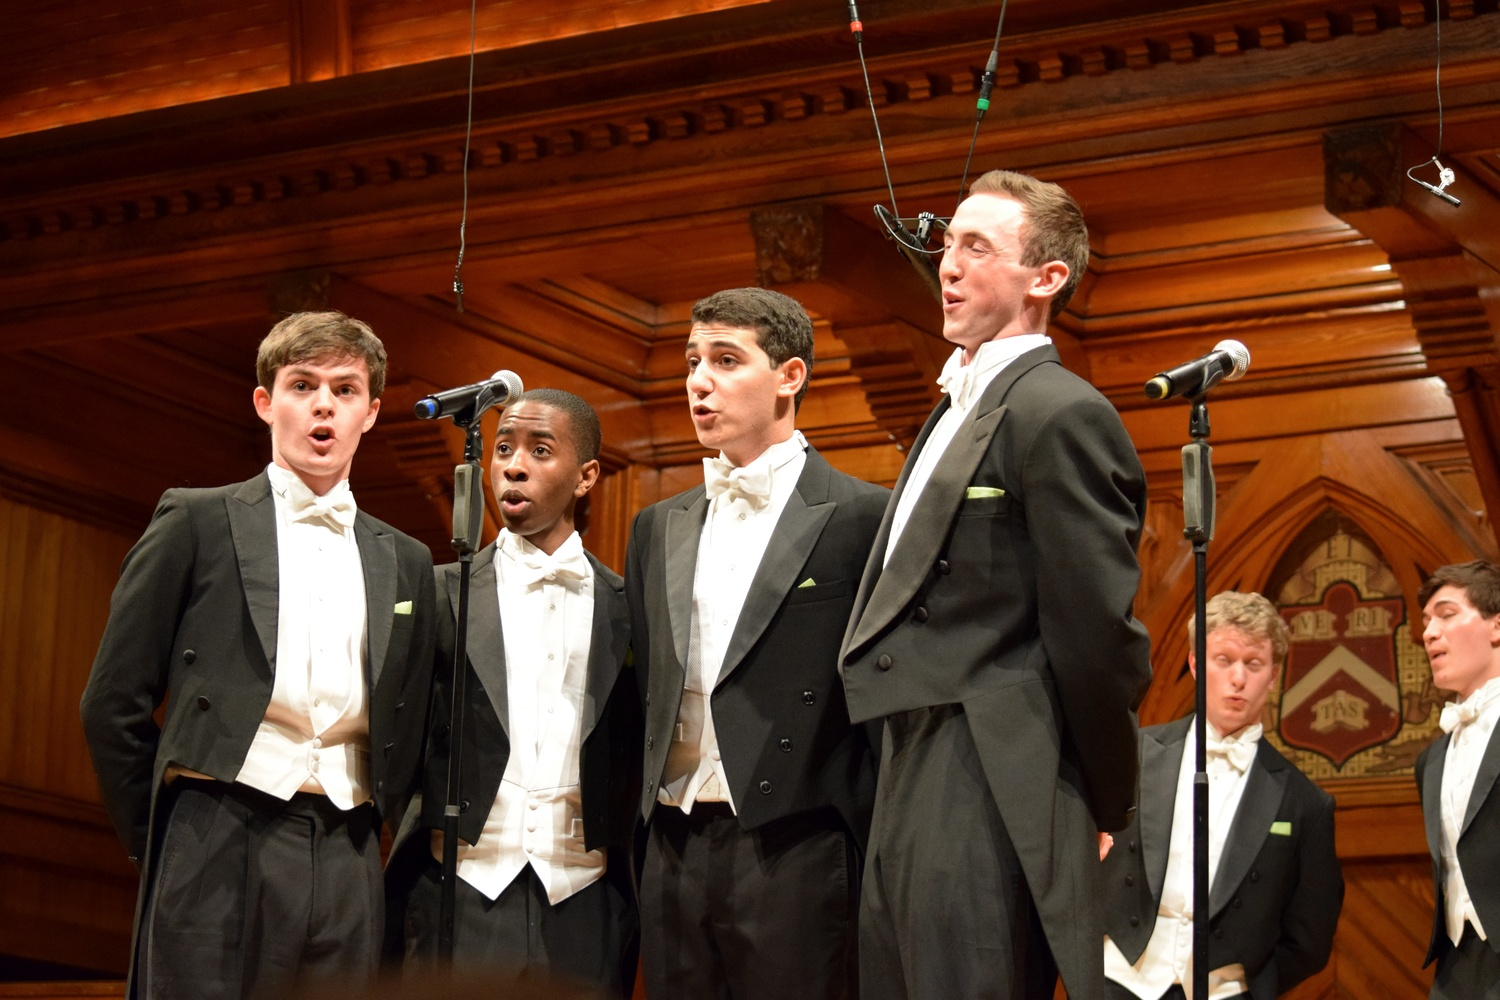 Matthew T. Barber '16, Sydney T. S. Mukasa '18, Jacques Berguig, and Will Jaroszewicz '17 of the Din & Tonics sing in a 2015 performance in Sanders Theatre.